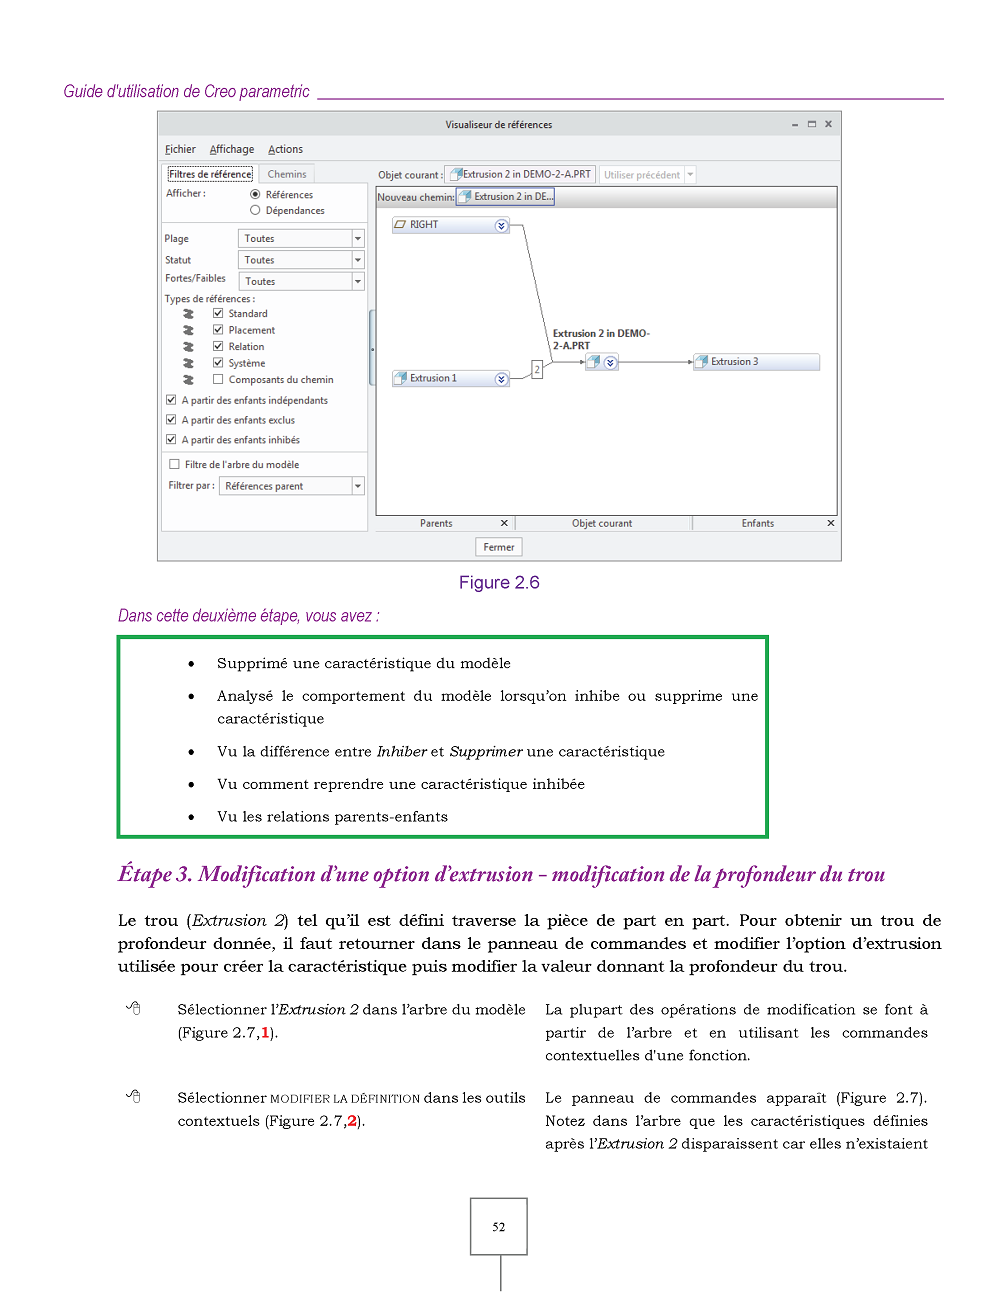 Creo Parametric exemple page 52